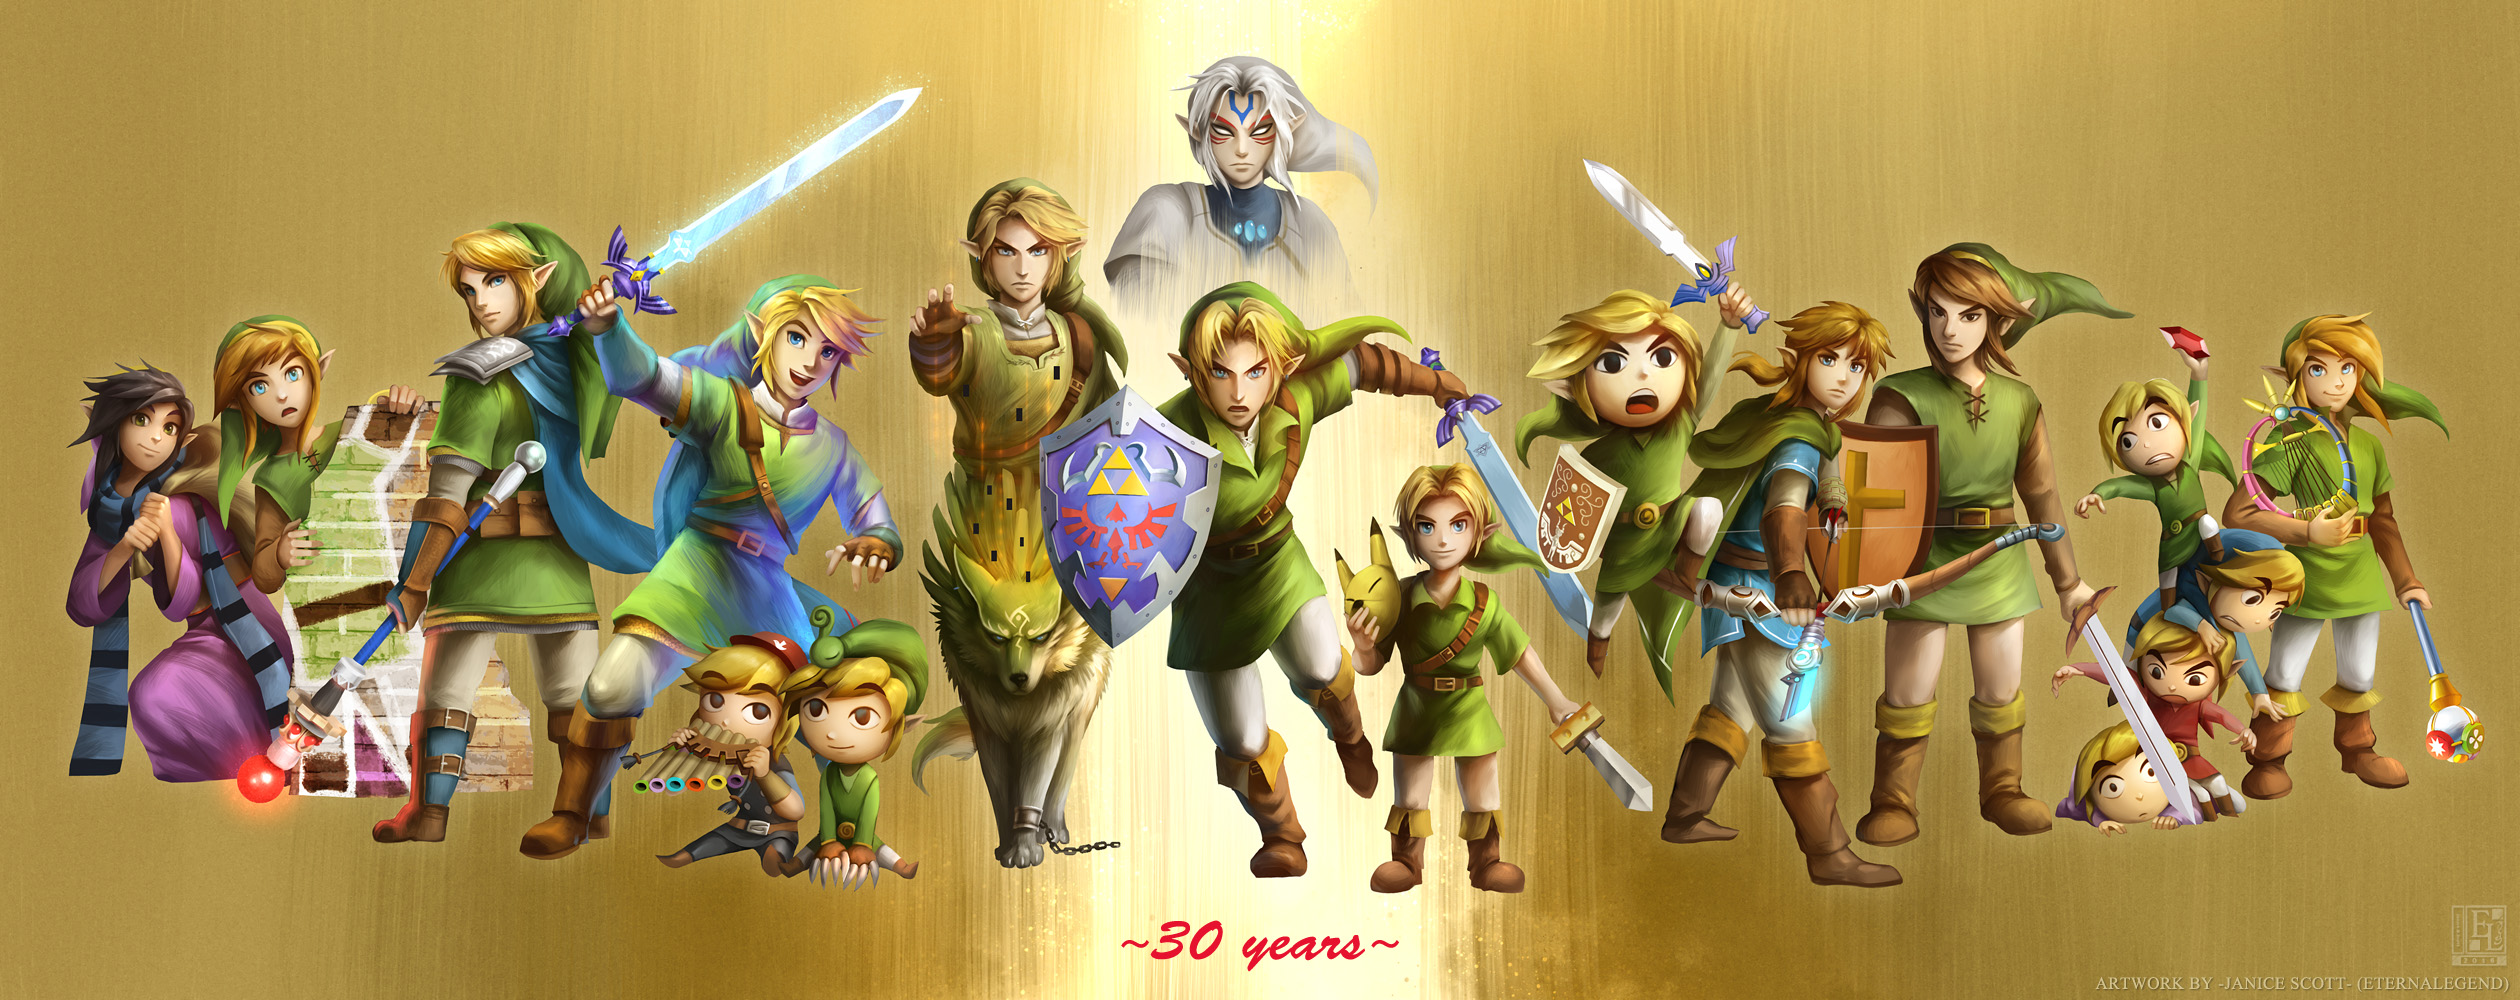 THE LEGEND OF ZELDA: ENCICLOPEDIA, DE NORMA EDITORIAL